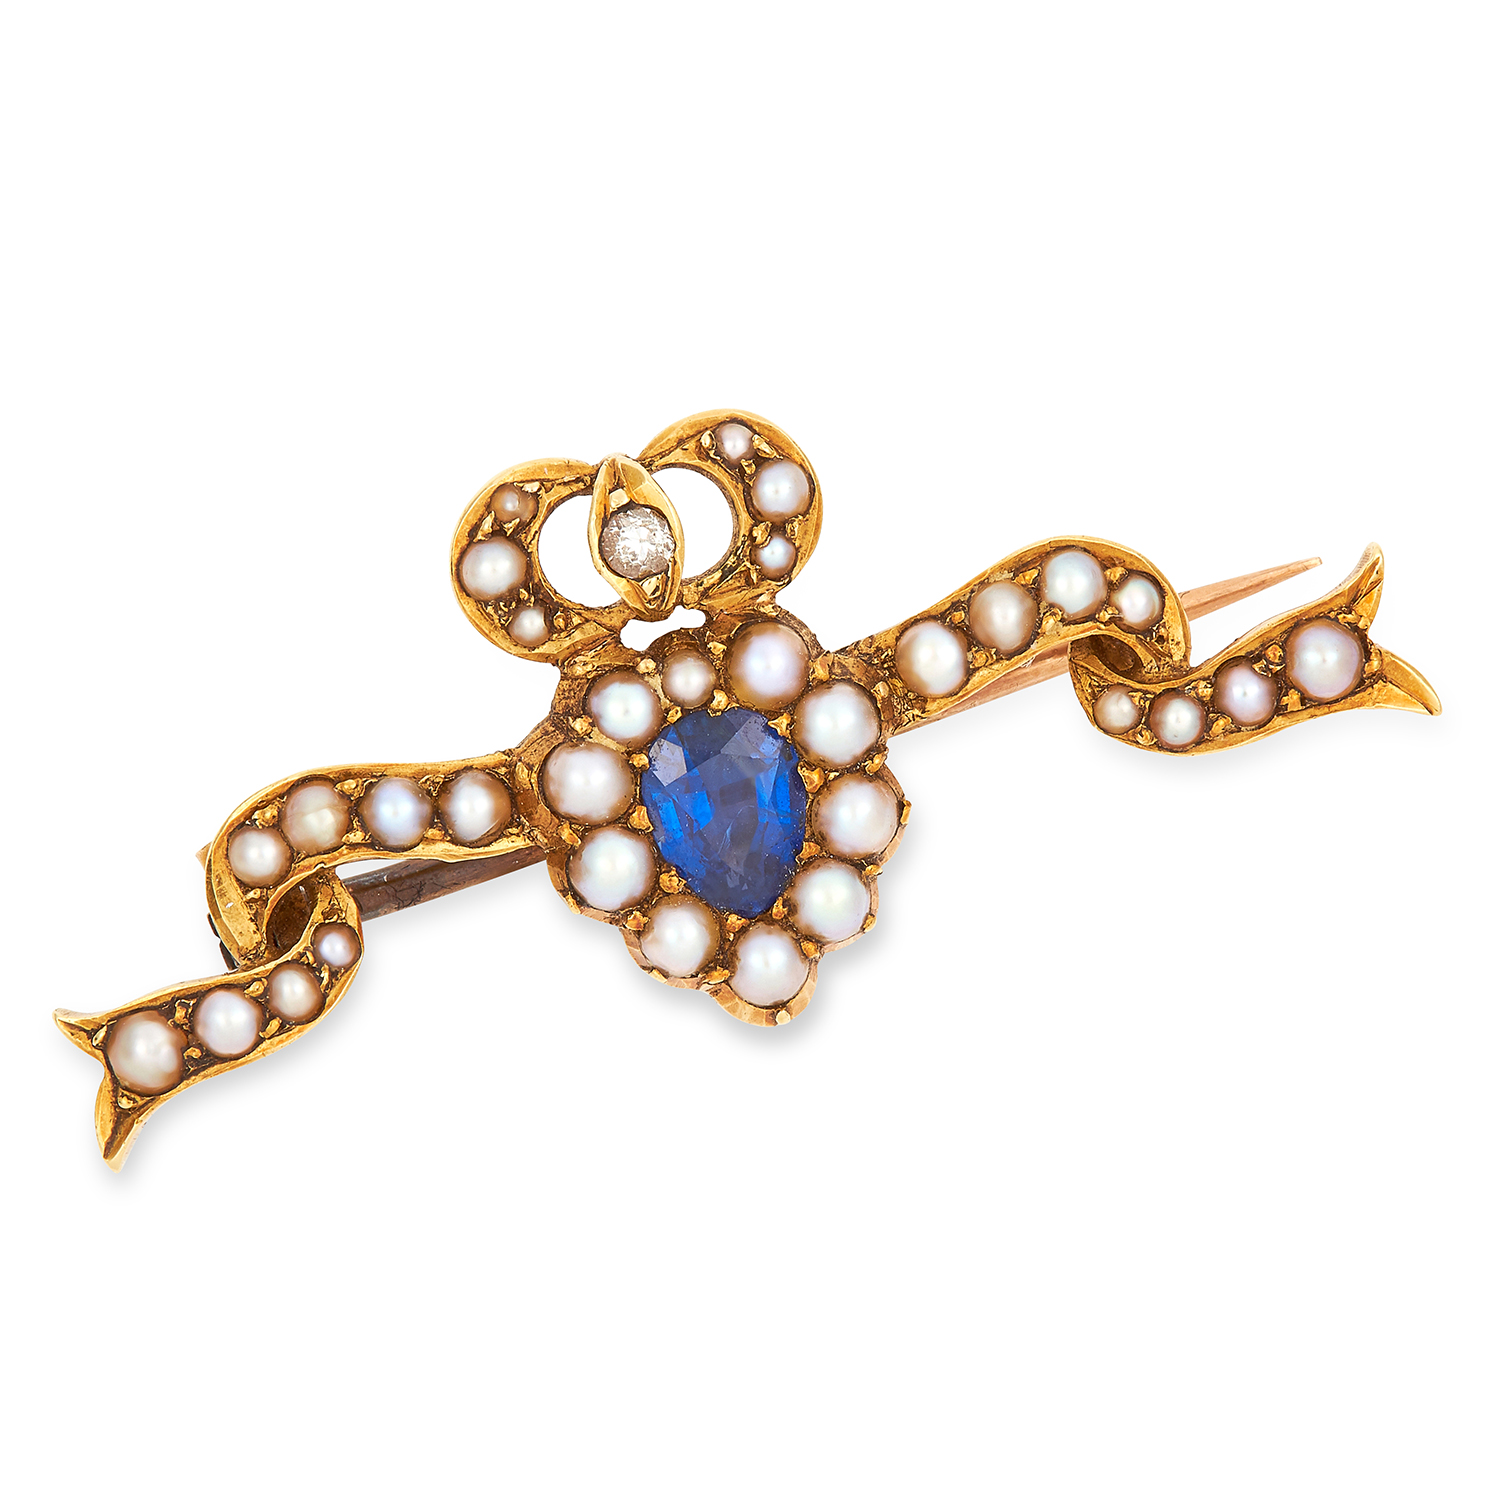 Los 54 - ANTIQUE SAPPHIRE, DIAMOND AND PEARL SWEETHEART BROOCH, 19TH CENTURY set with a pear cut sapphire,